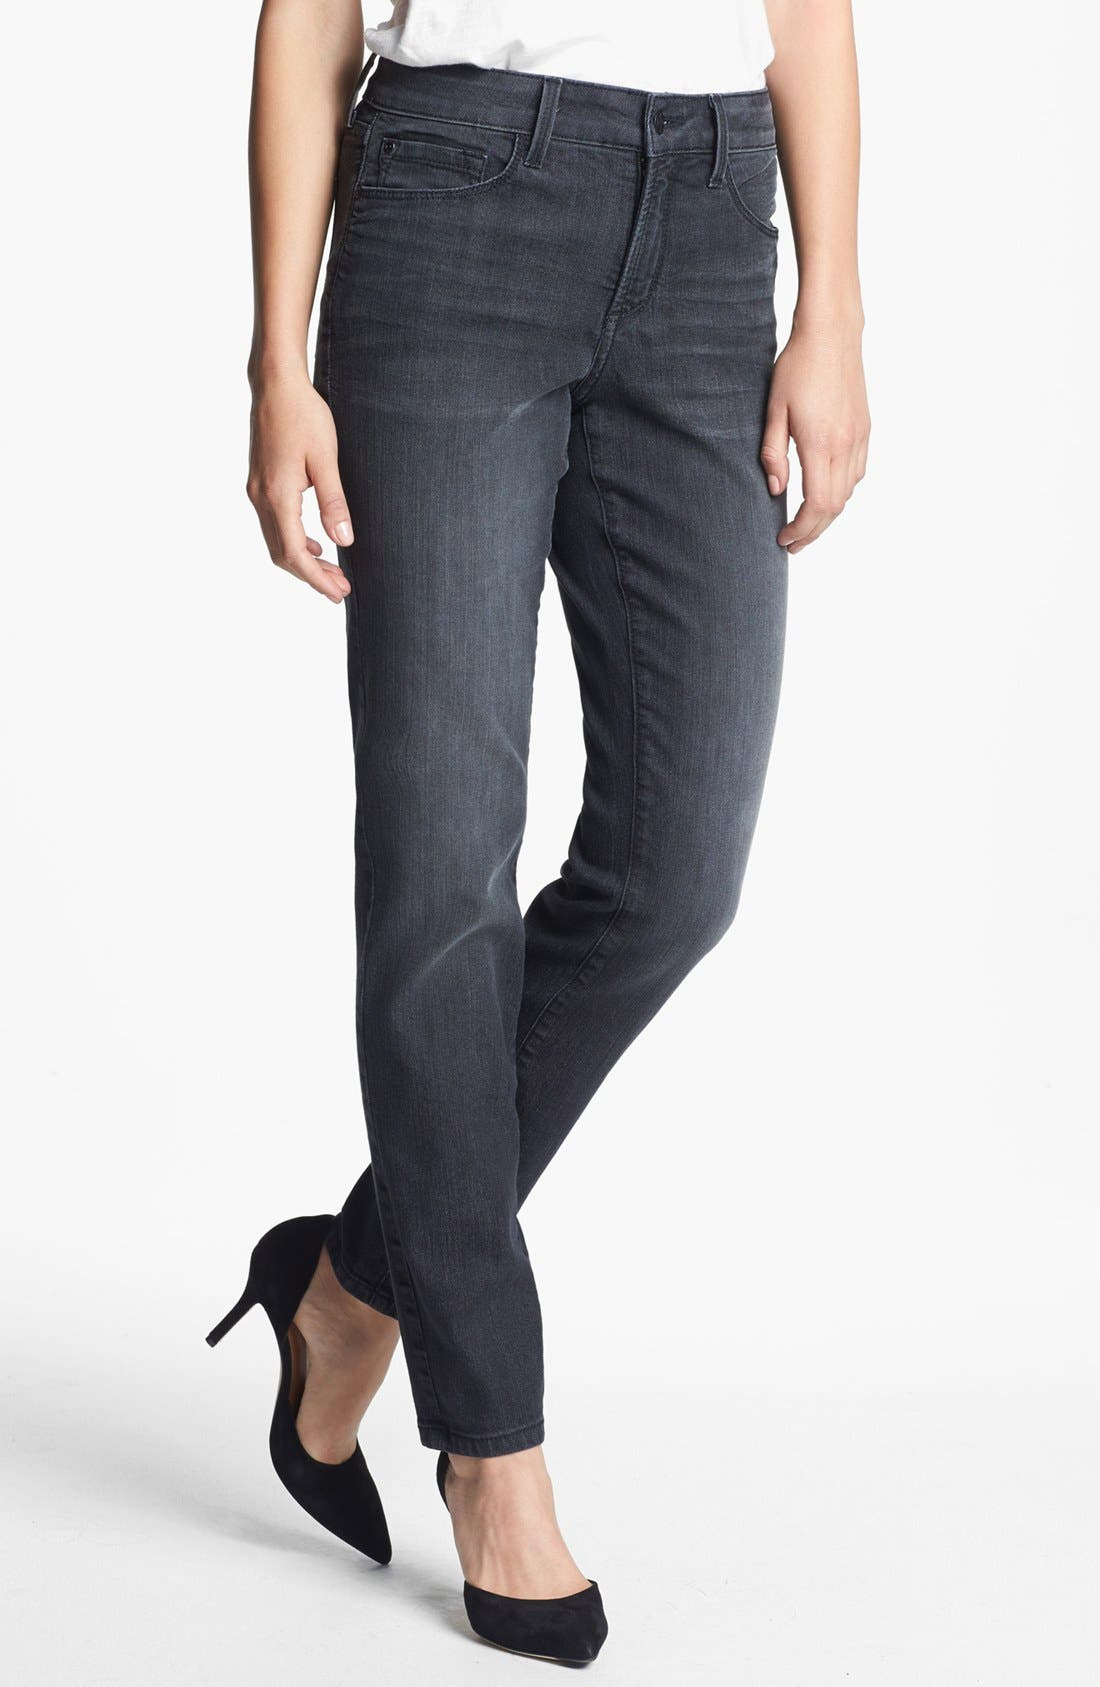 Main Image - NYDJ 'Alina' Stretch Skinny Jeans (Stoney River) (Regular & Petite)